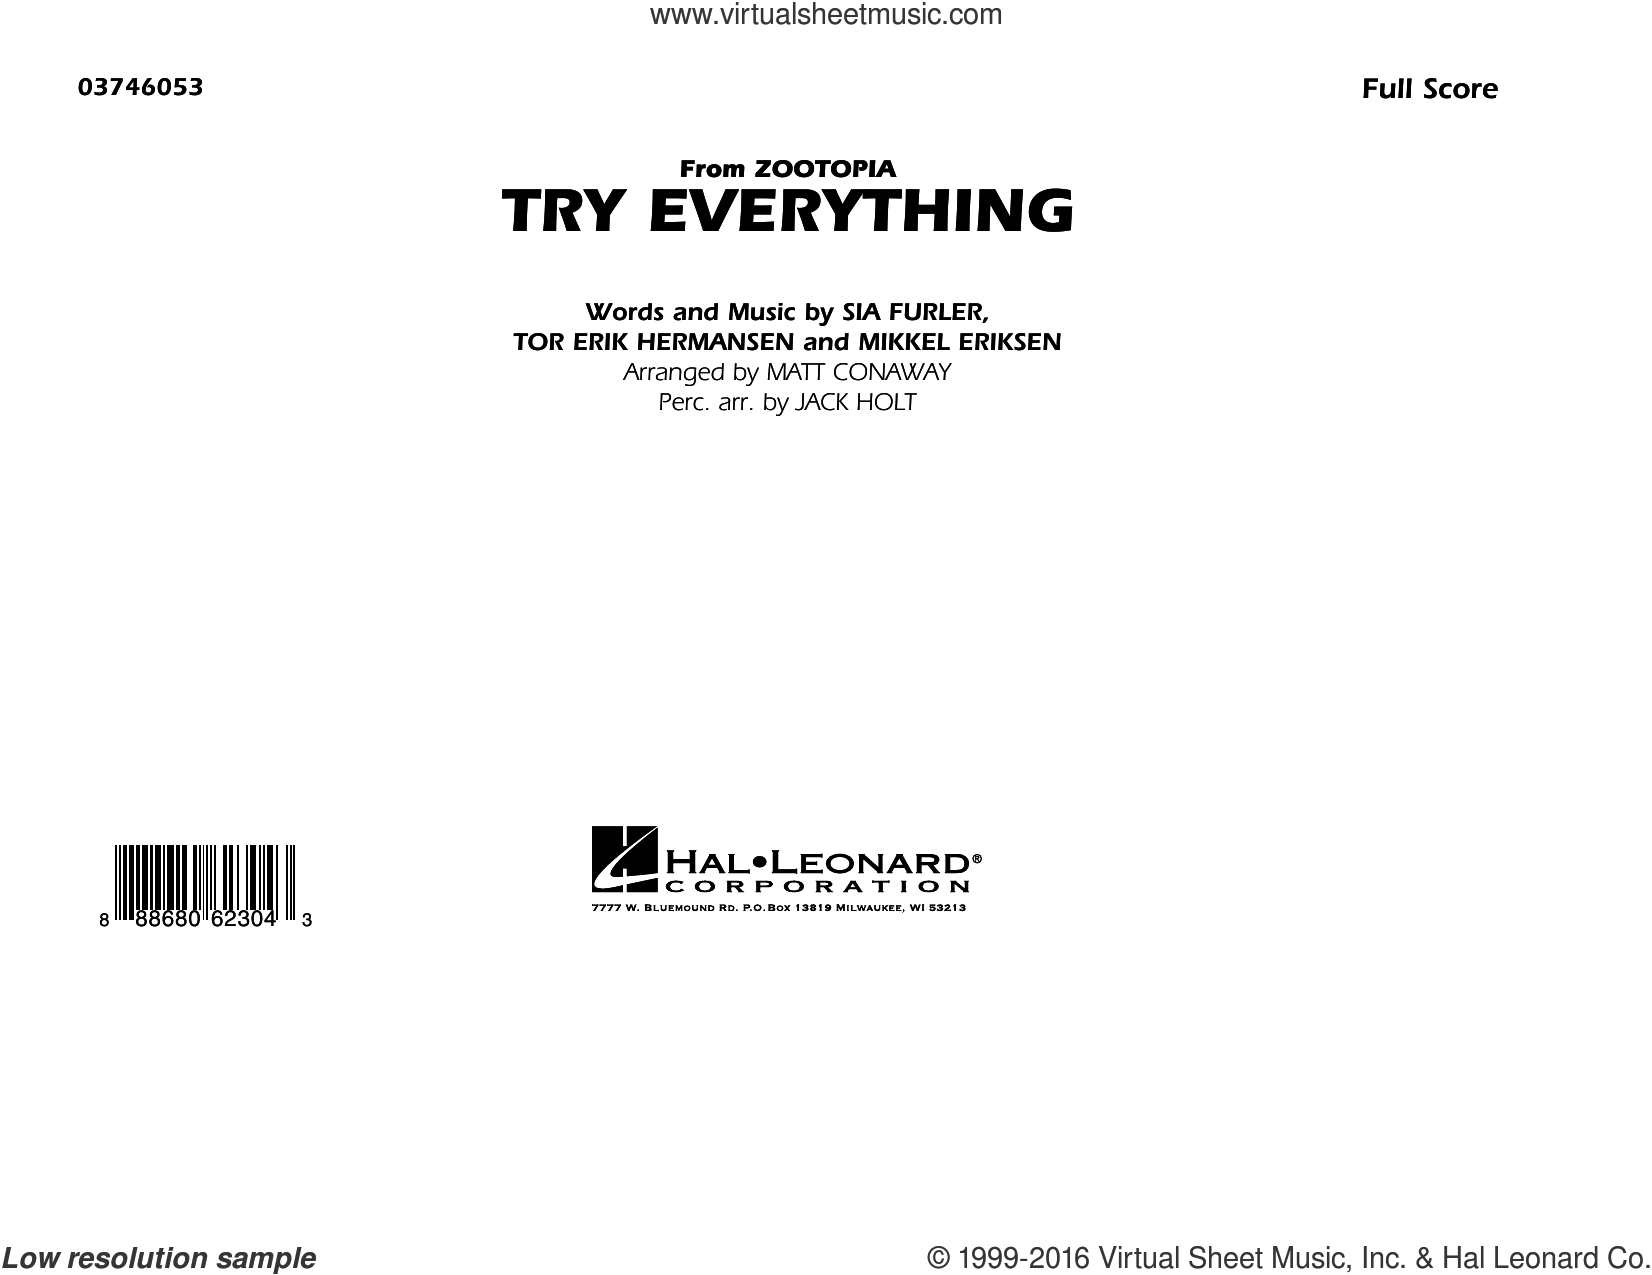 Try Everything (from Zootopia) sheet music for marching band (full score) by Tor Erik Hermansen